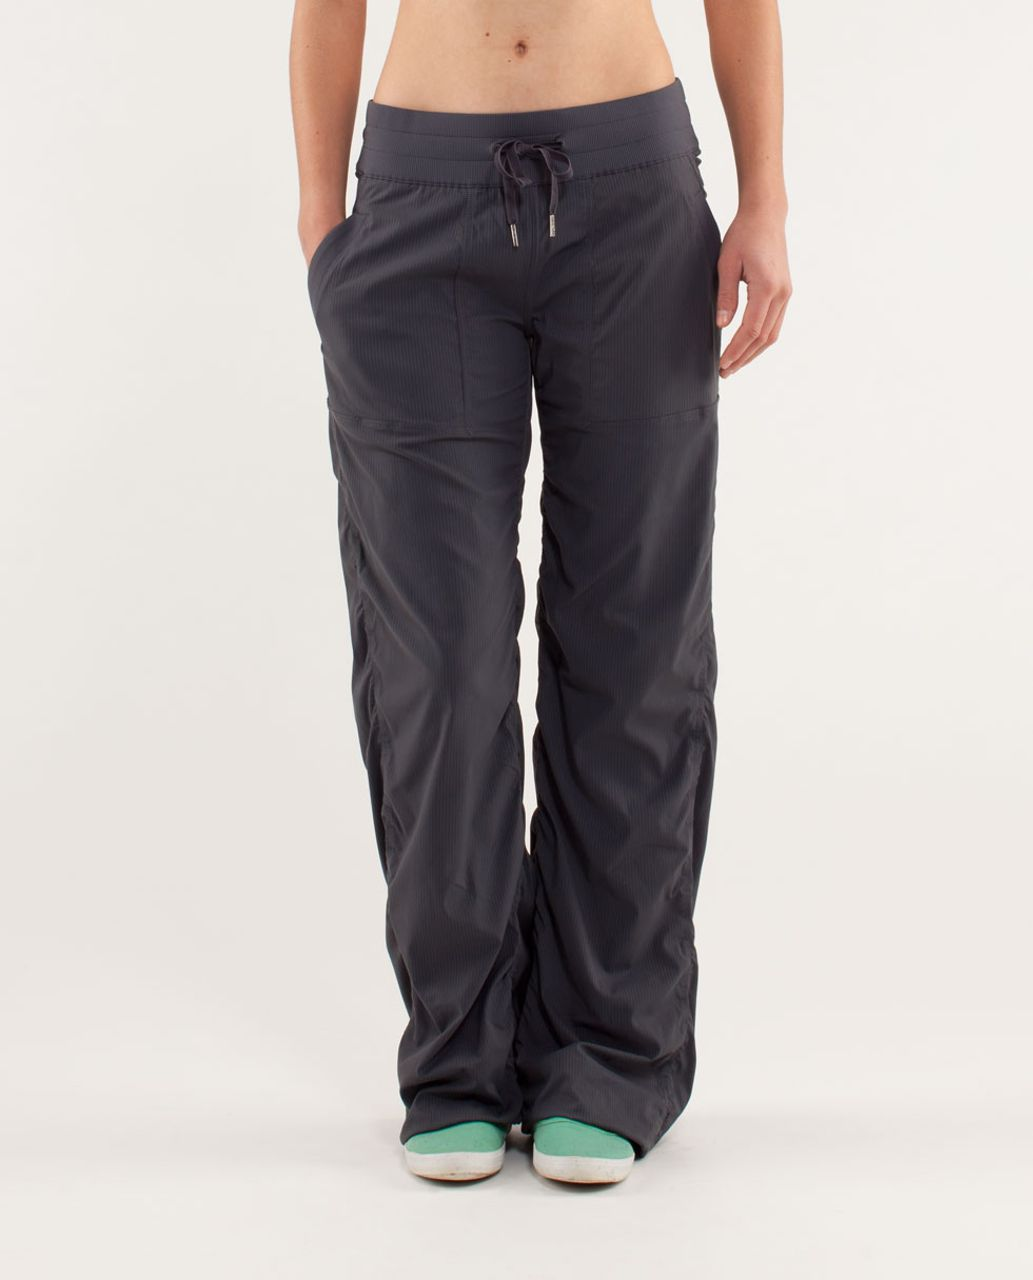 Lululemon Studio Pant II*No Liner - Coal